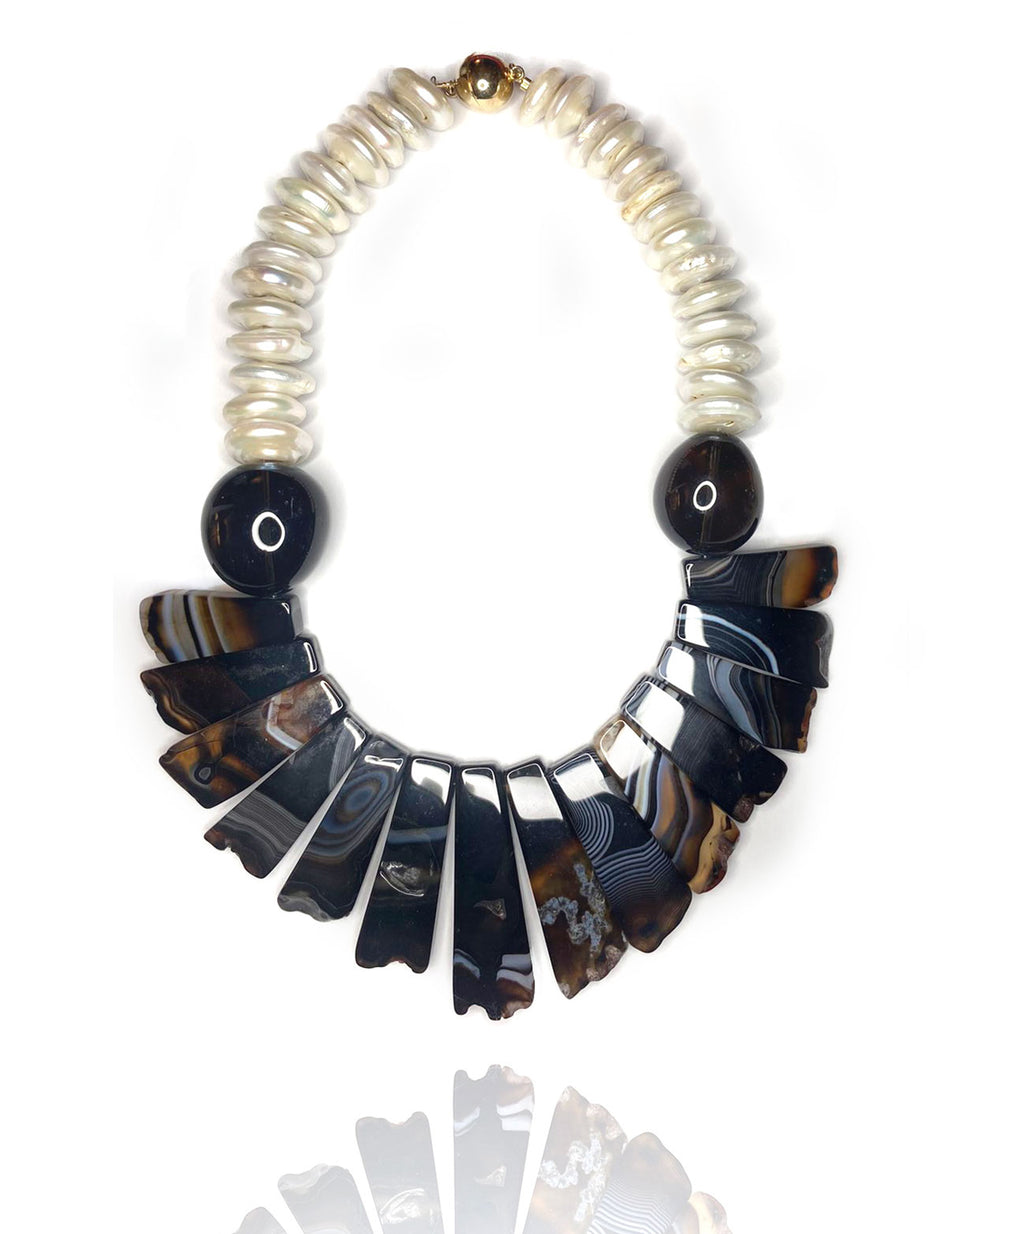 Exotic, tribal style necklace inspired by travel to the 'wilderness'. Mix of shell pearls, black and caramel agate chunks, smokey quartz and gold plated silver magnetic clasp. Dare to wear this adventurous yet stylish statement piece.